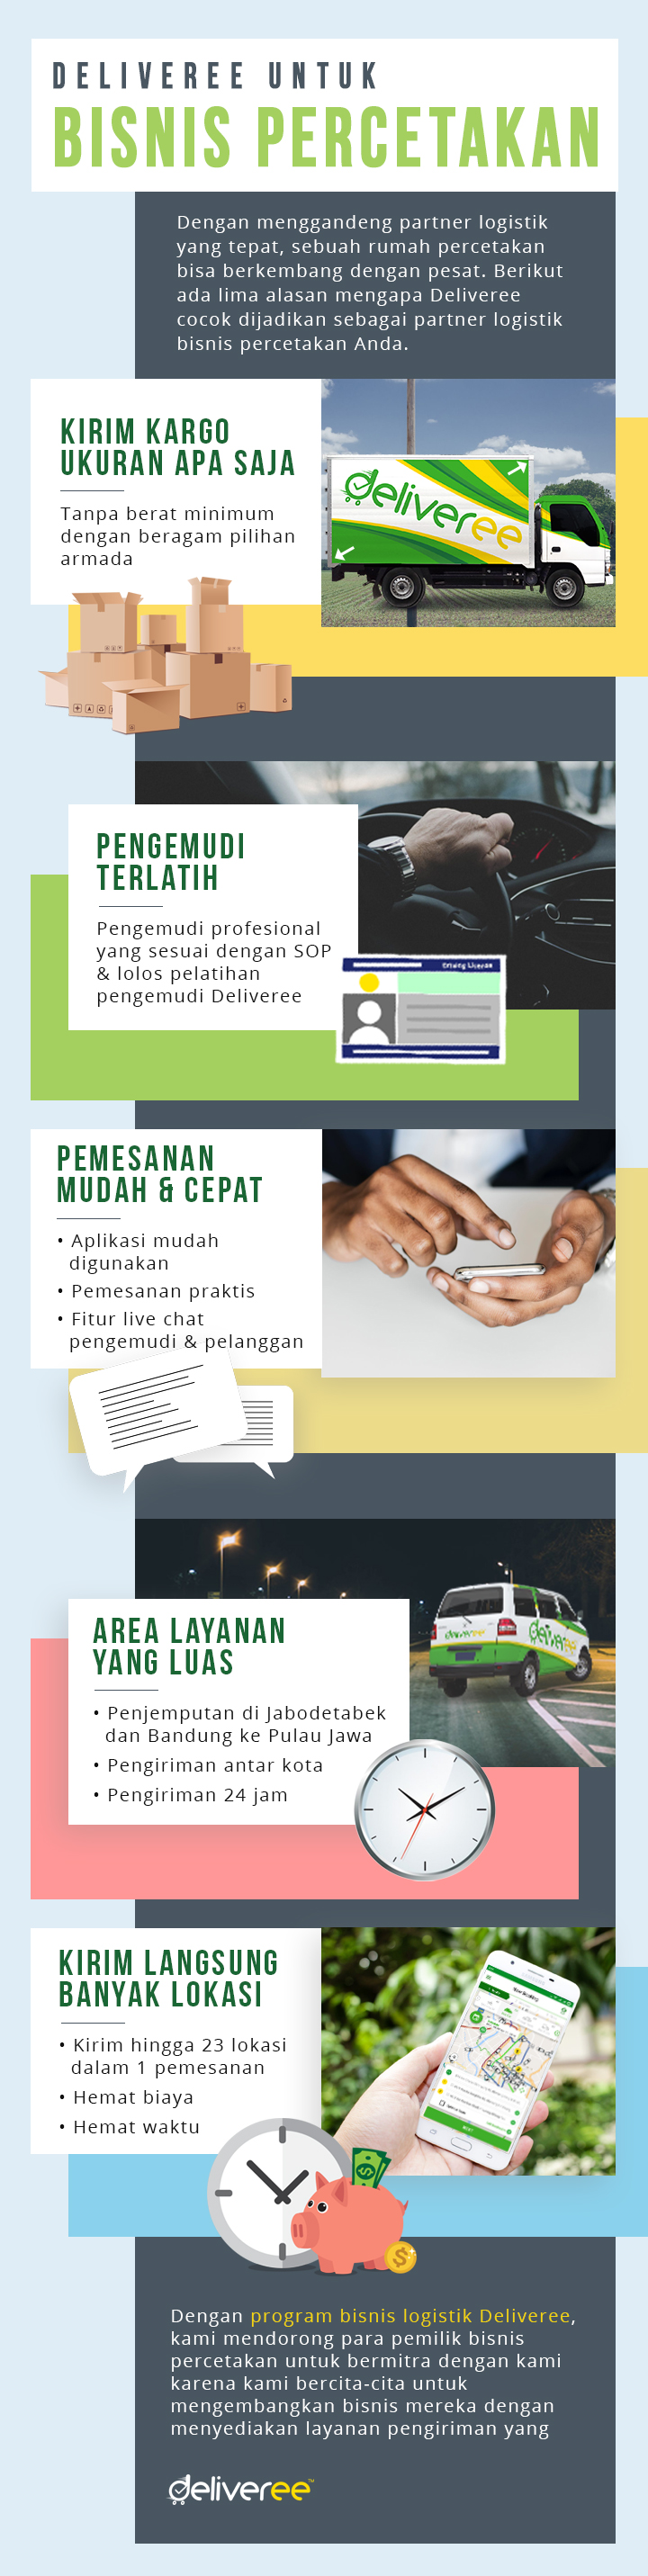 Deliveree,bisnis logistk,partner logistik,deliveree app,pengiriman express